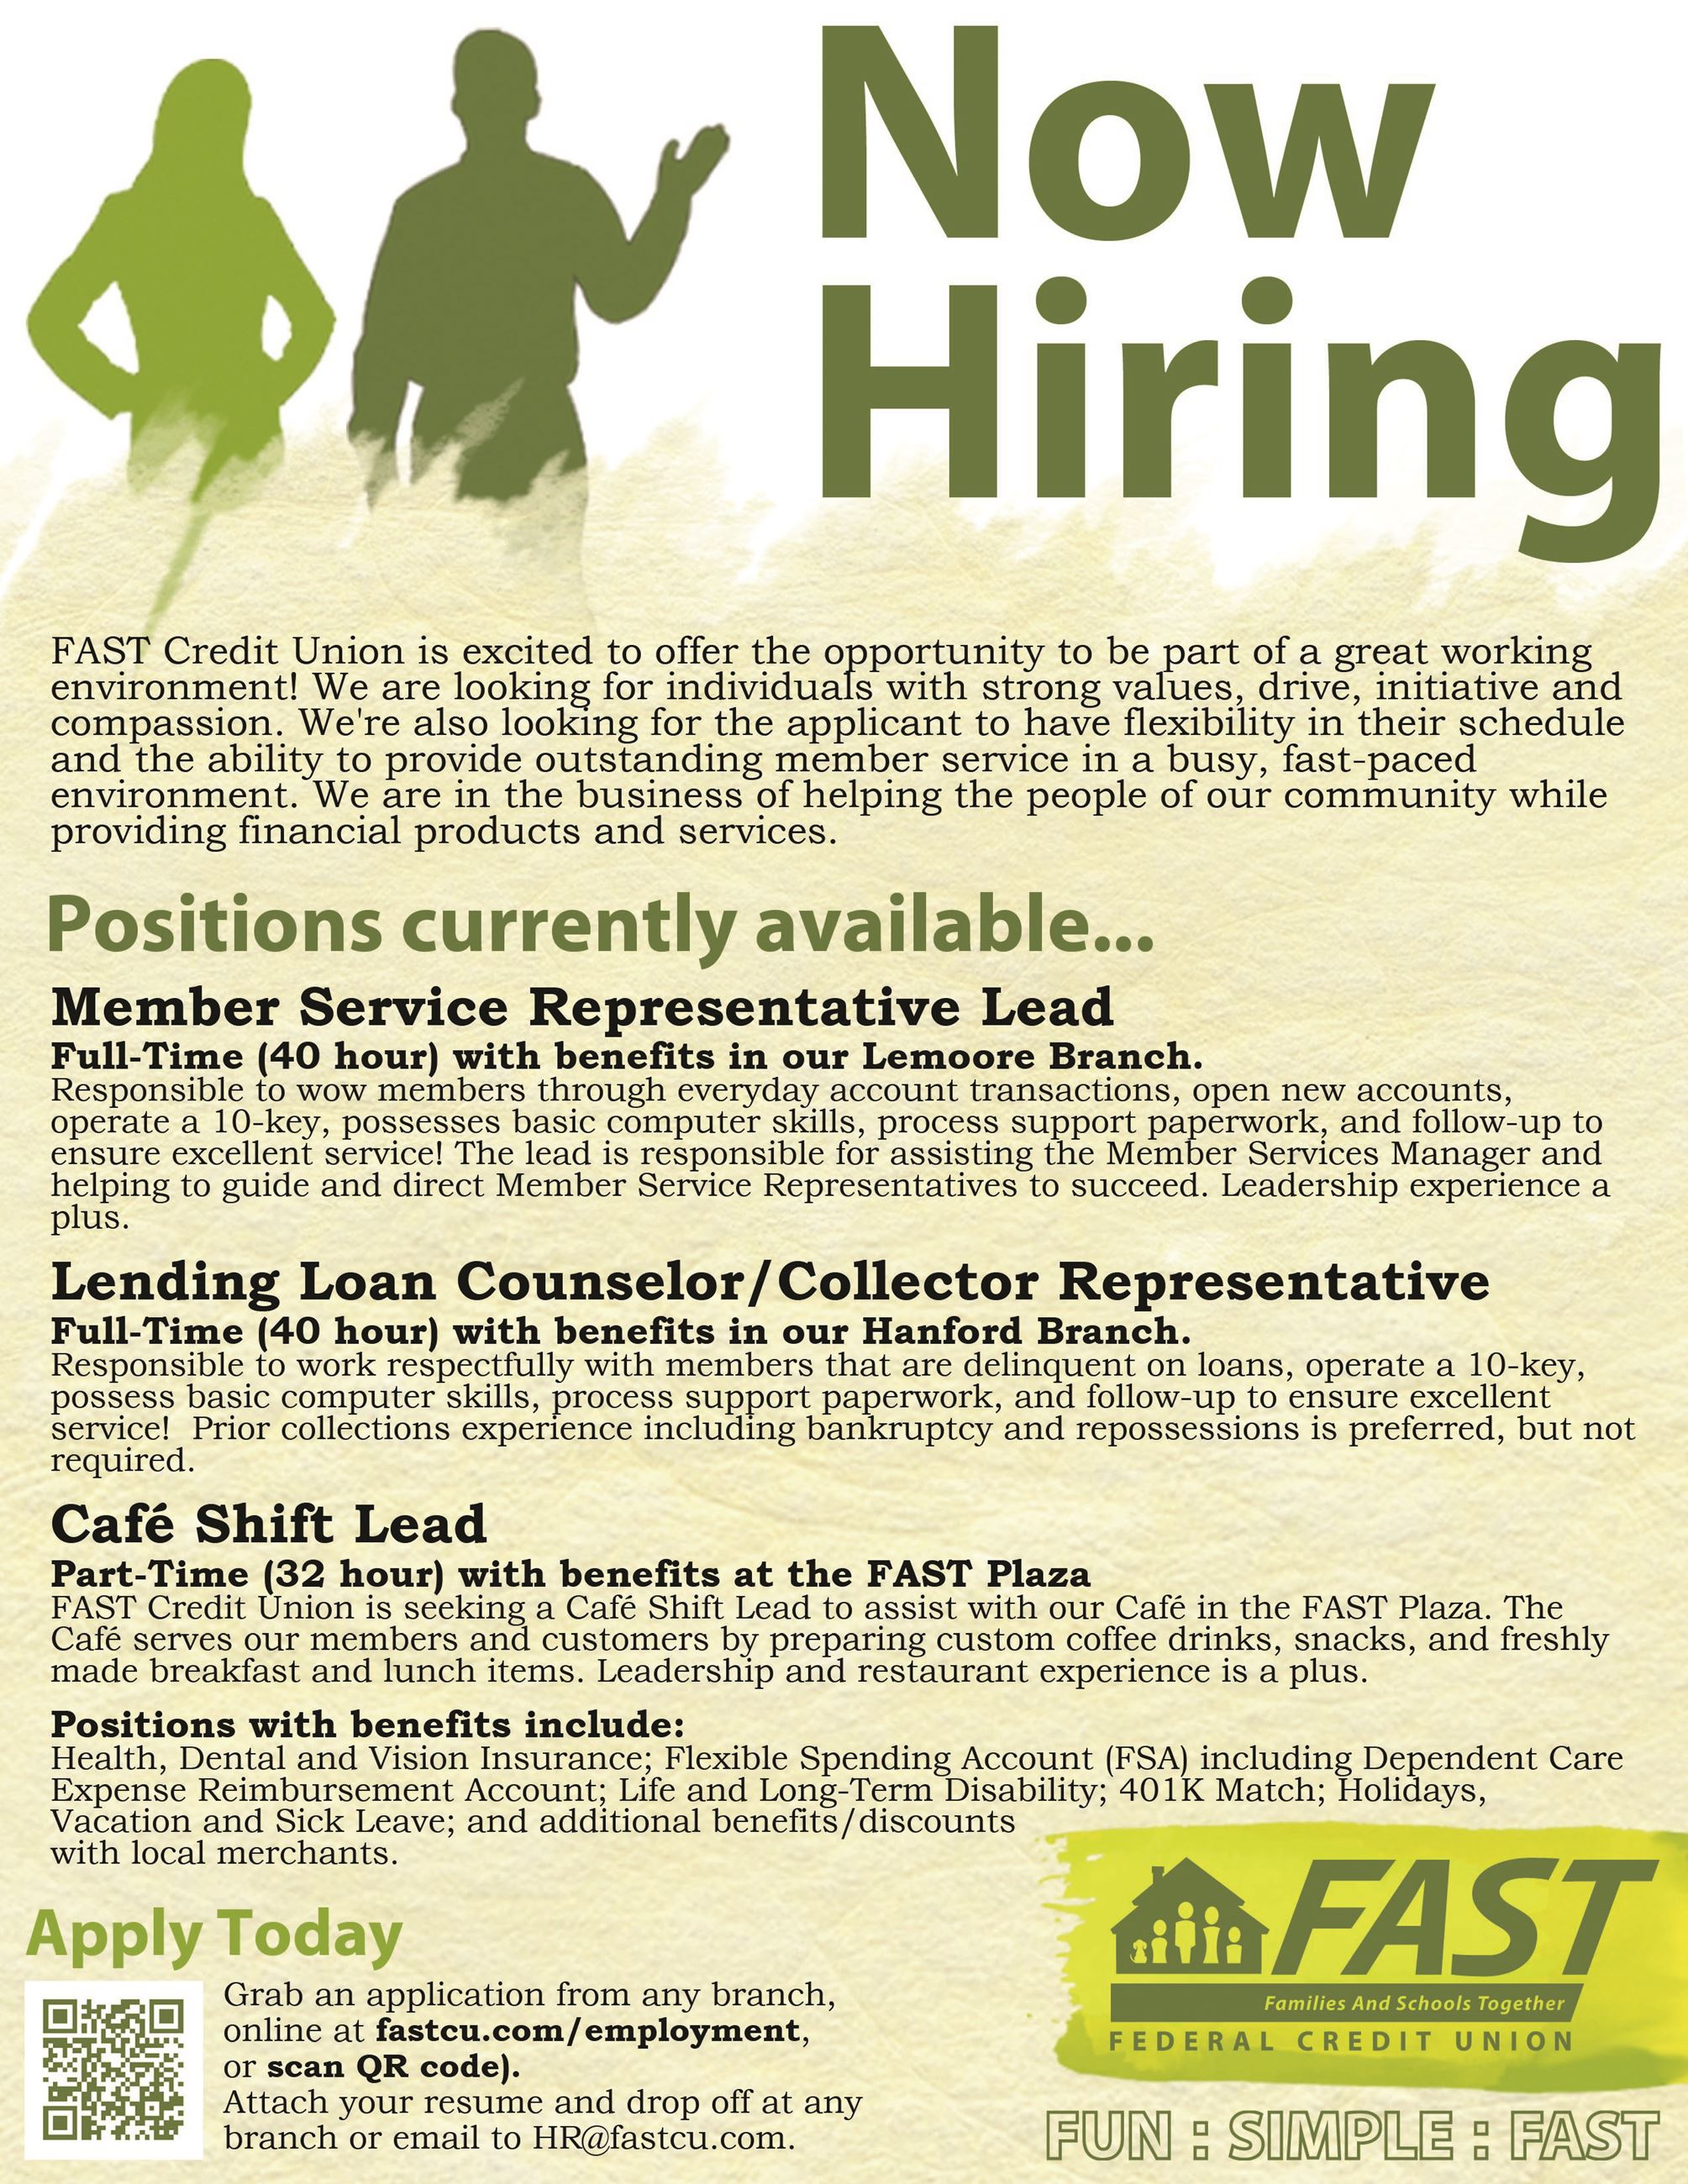 2018.08.22 FAST Now Hiring Flyer